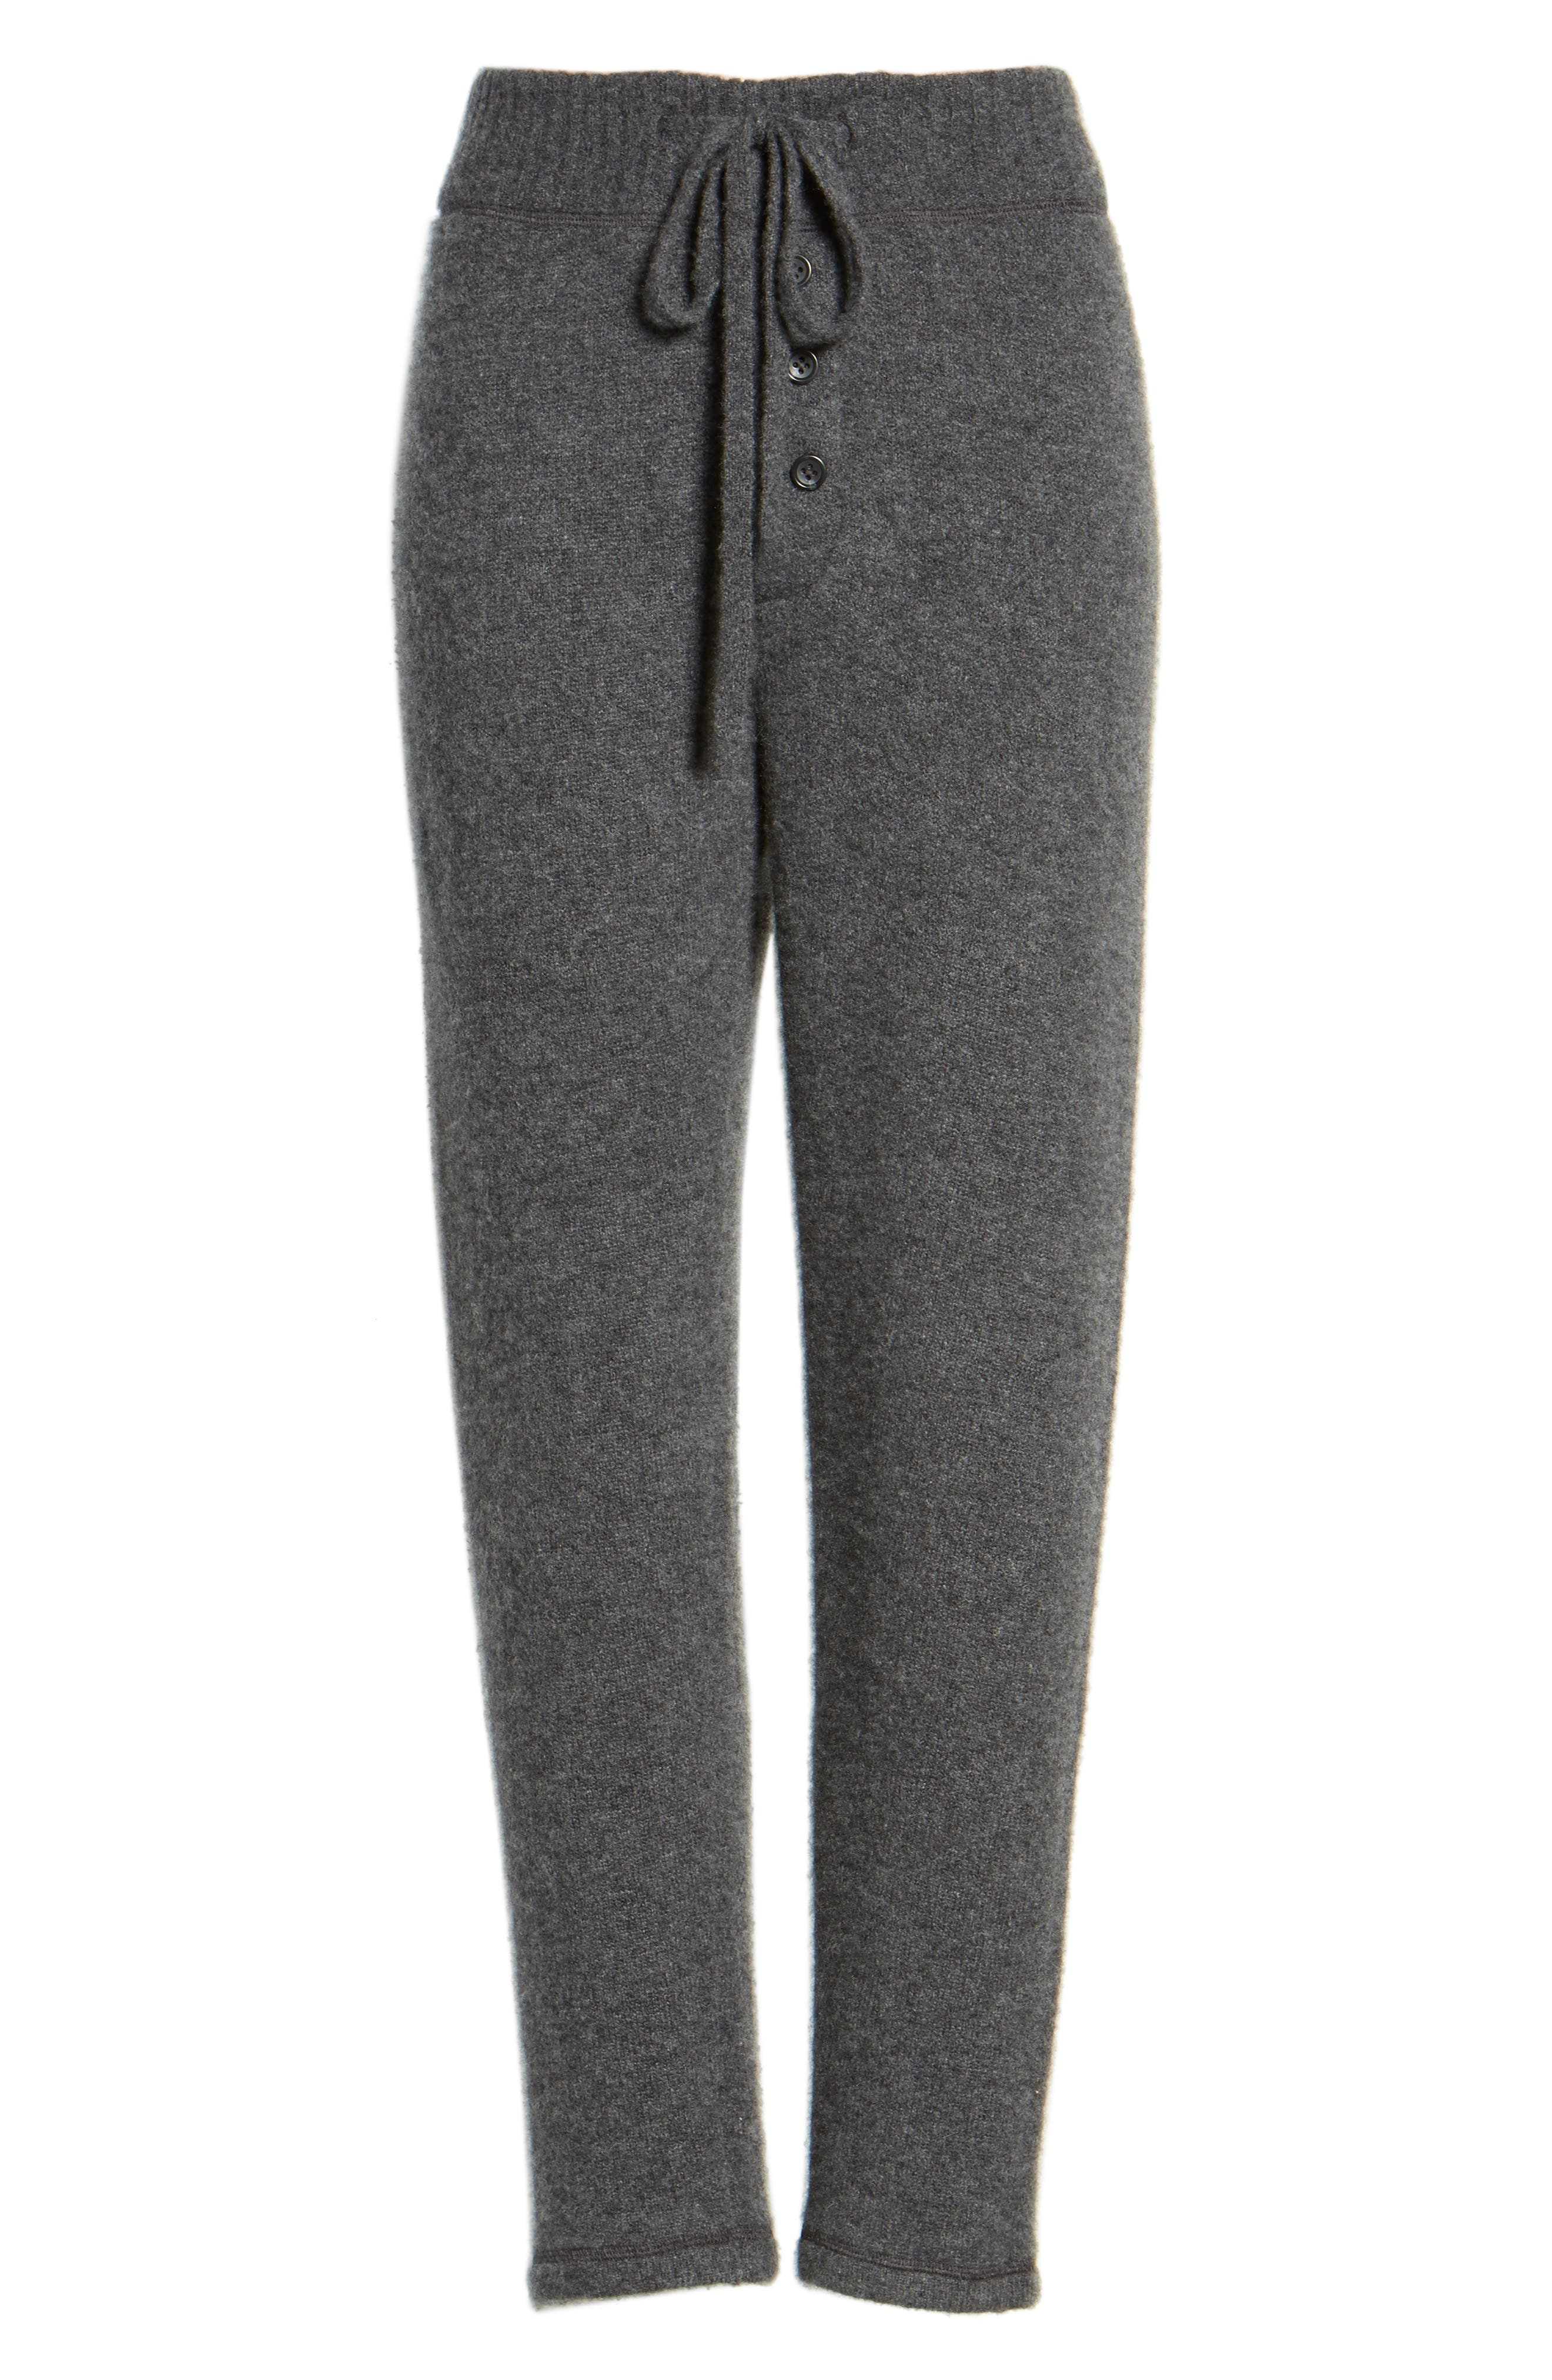 Brushed Cashmere Sweatpants,                             Alternate thumbnail 6, color,                             069